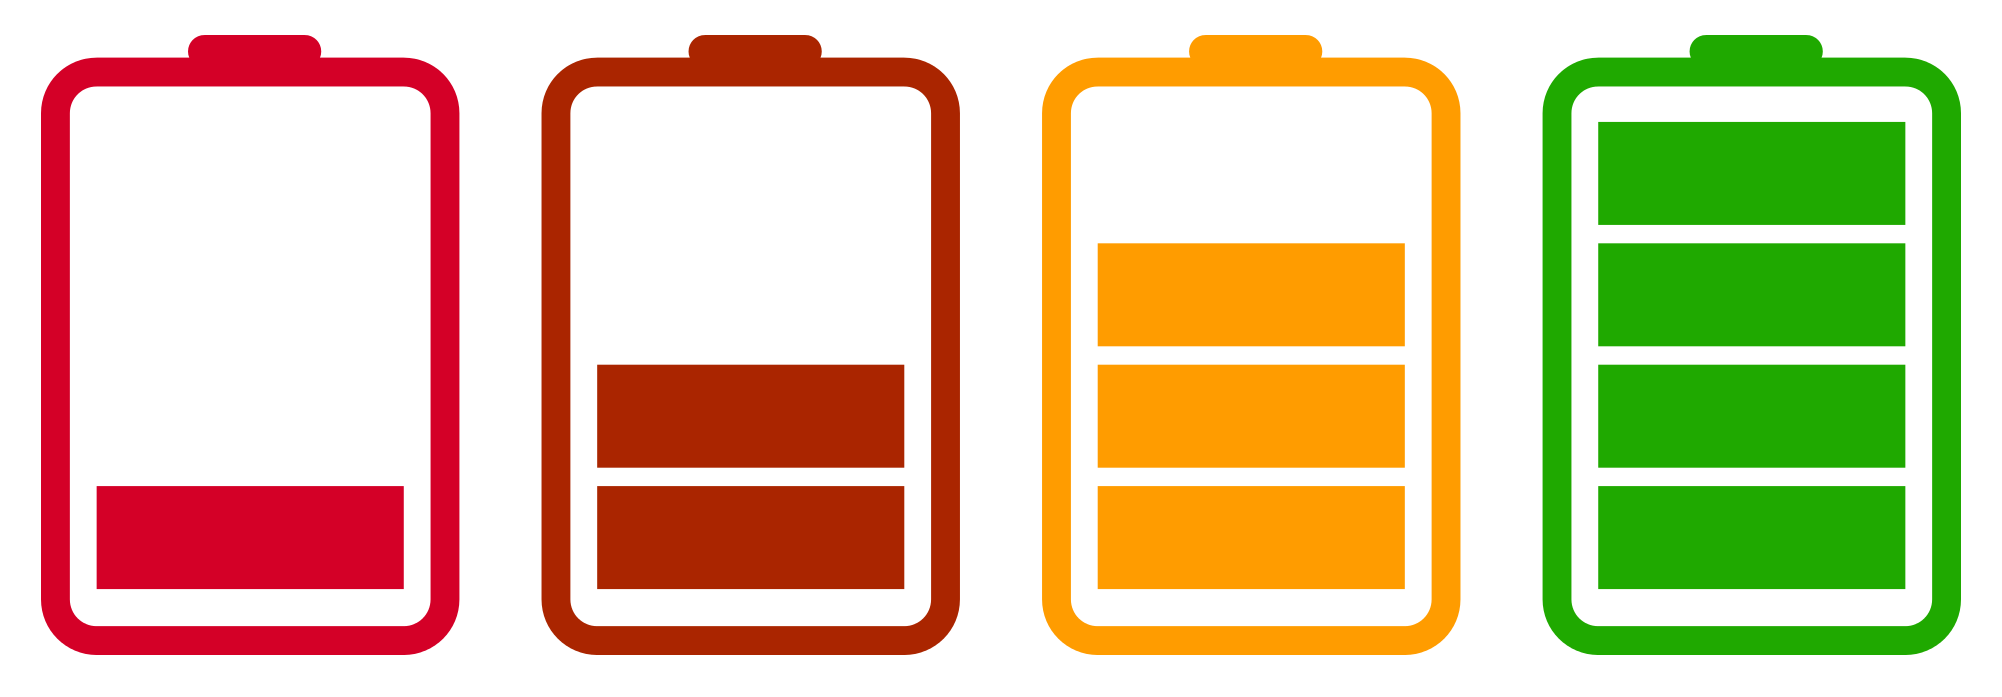 Battery Clipart Mobile Battery Battery Mobile Battery Transparent Free For Download On Webstockreview 2021